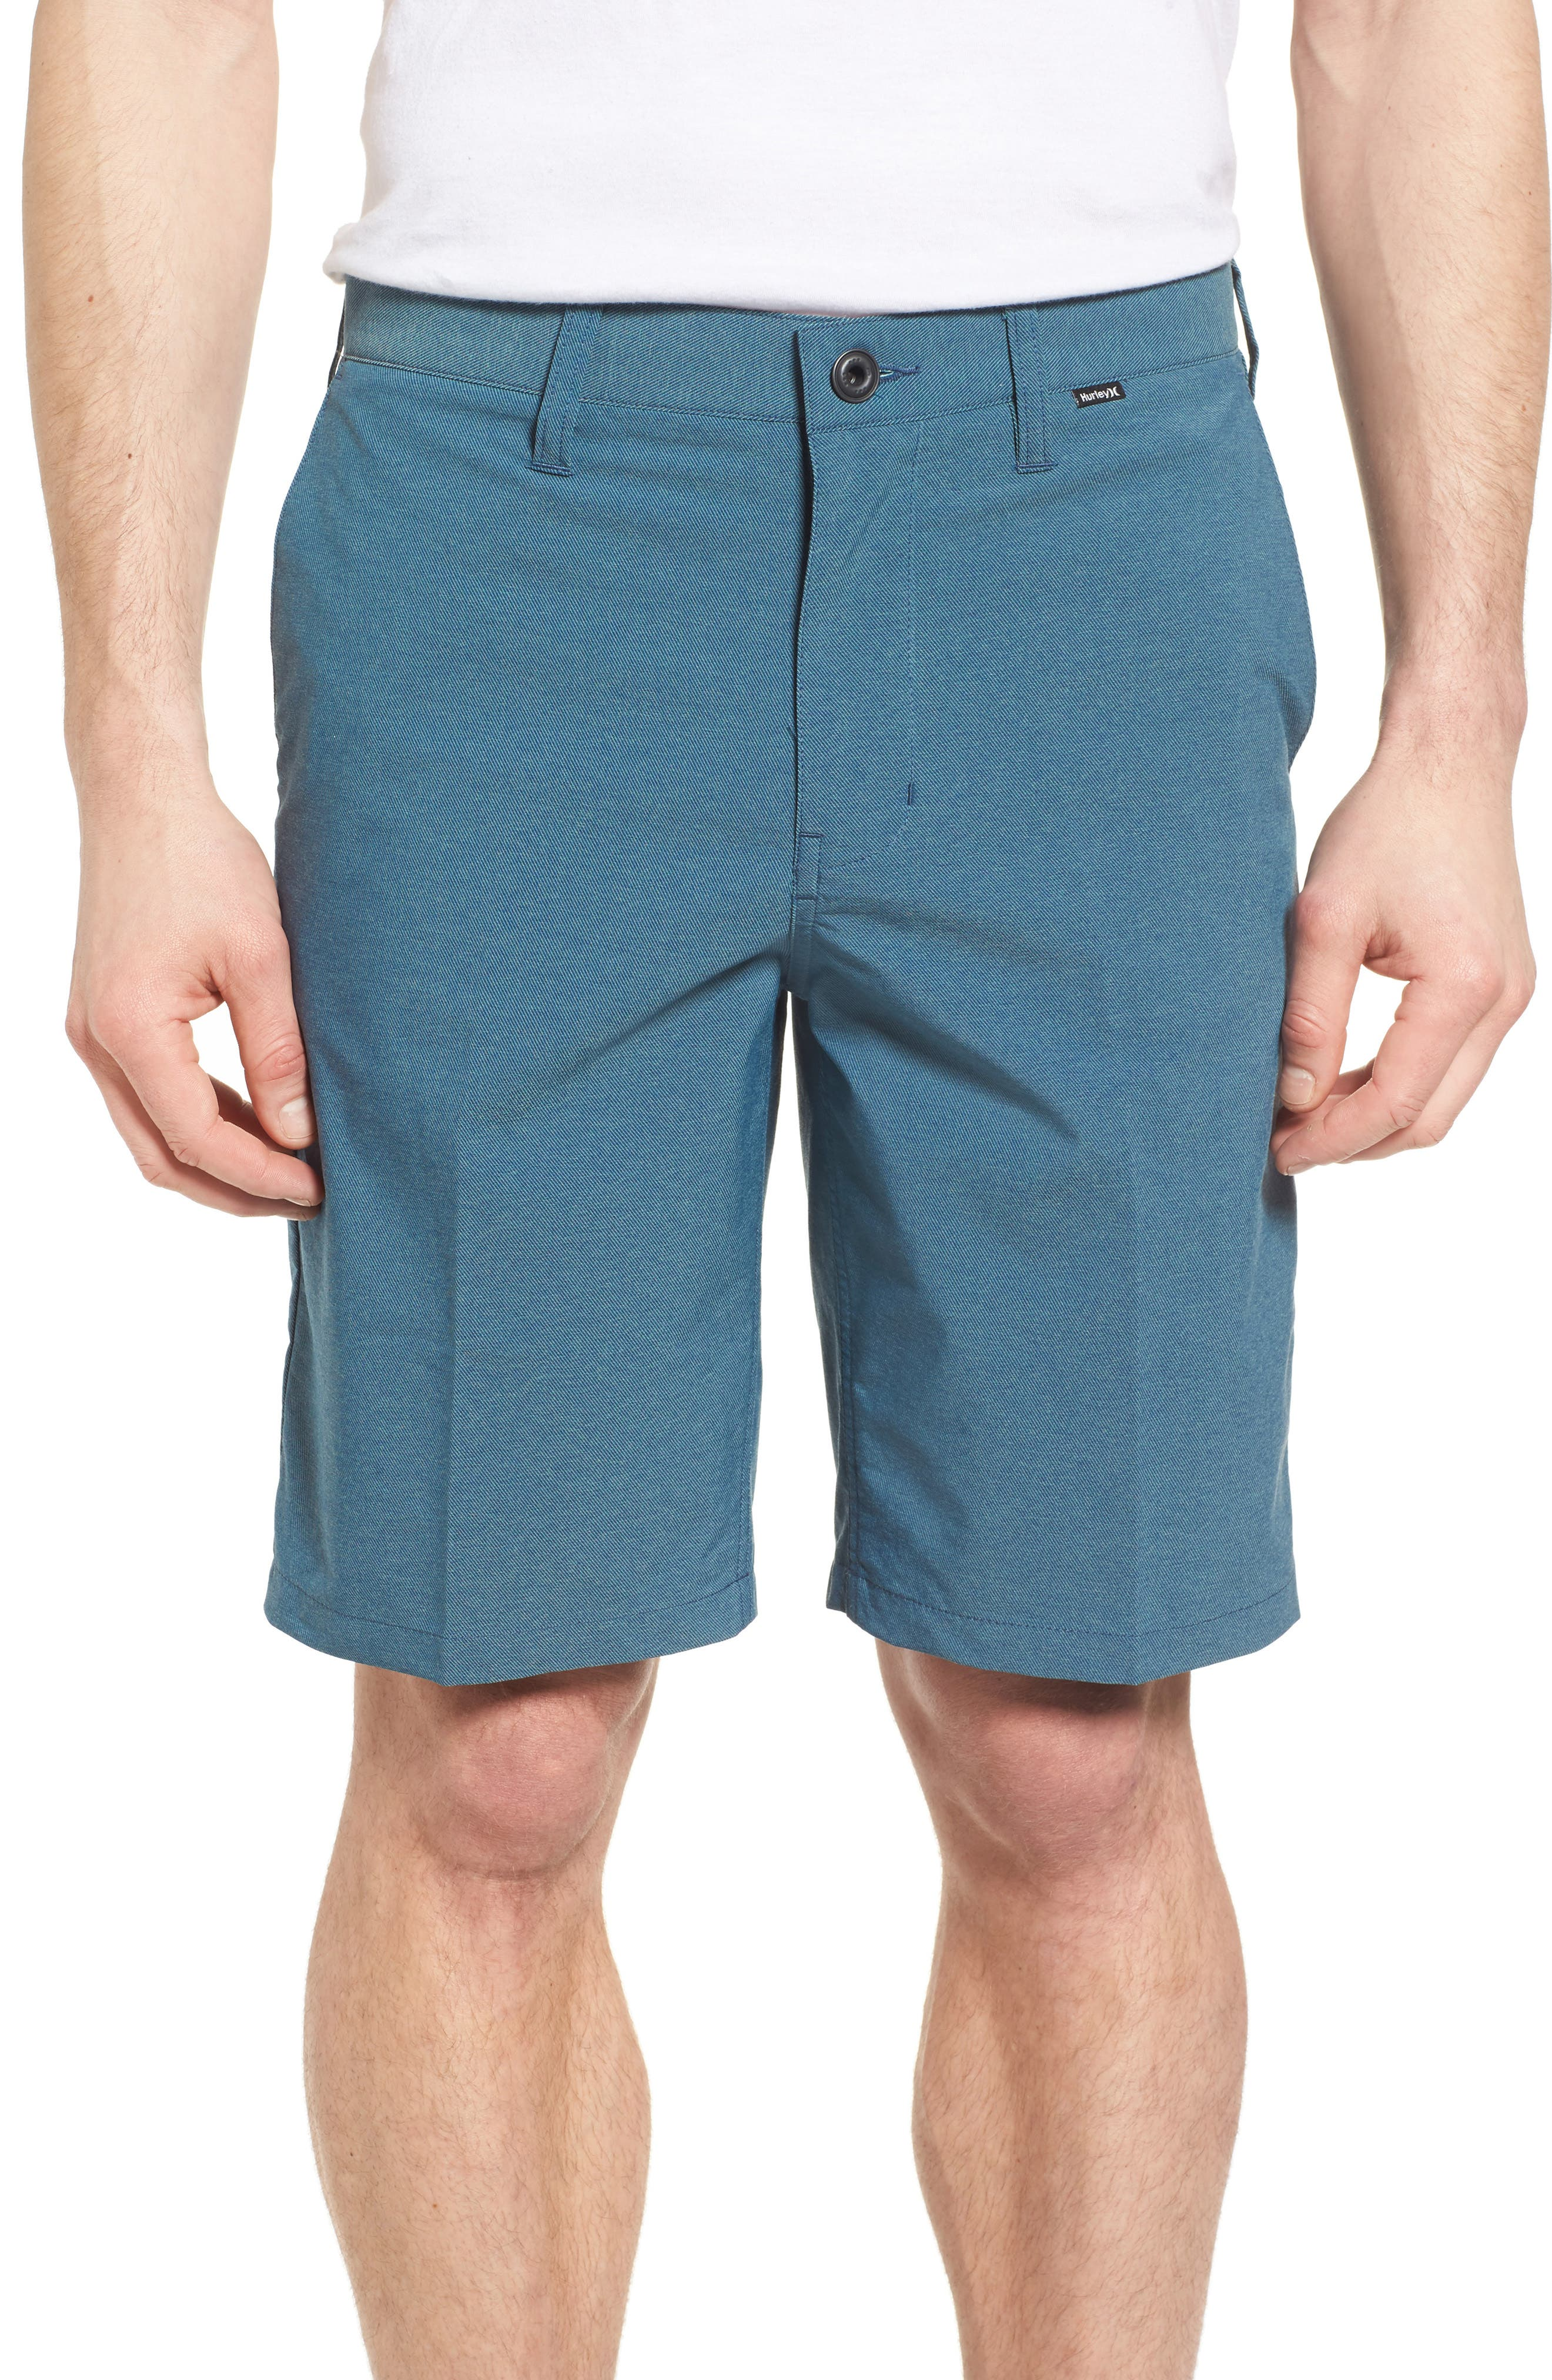 Main Image - Hurley 'Dry Out' Dri-FIT™ Chino Shorts